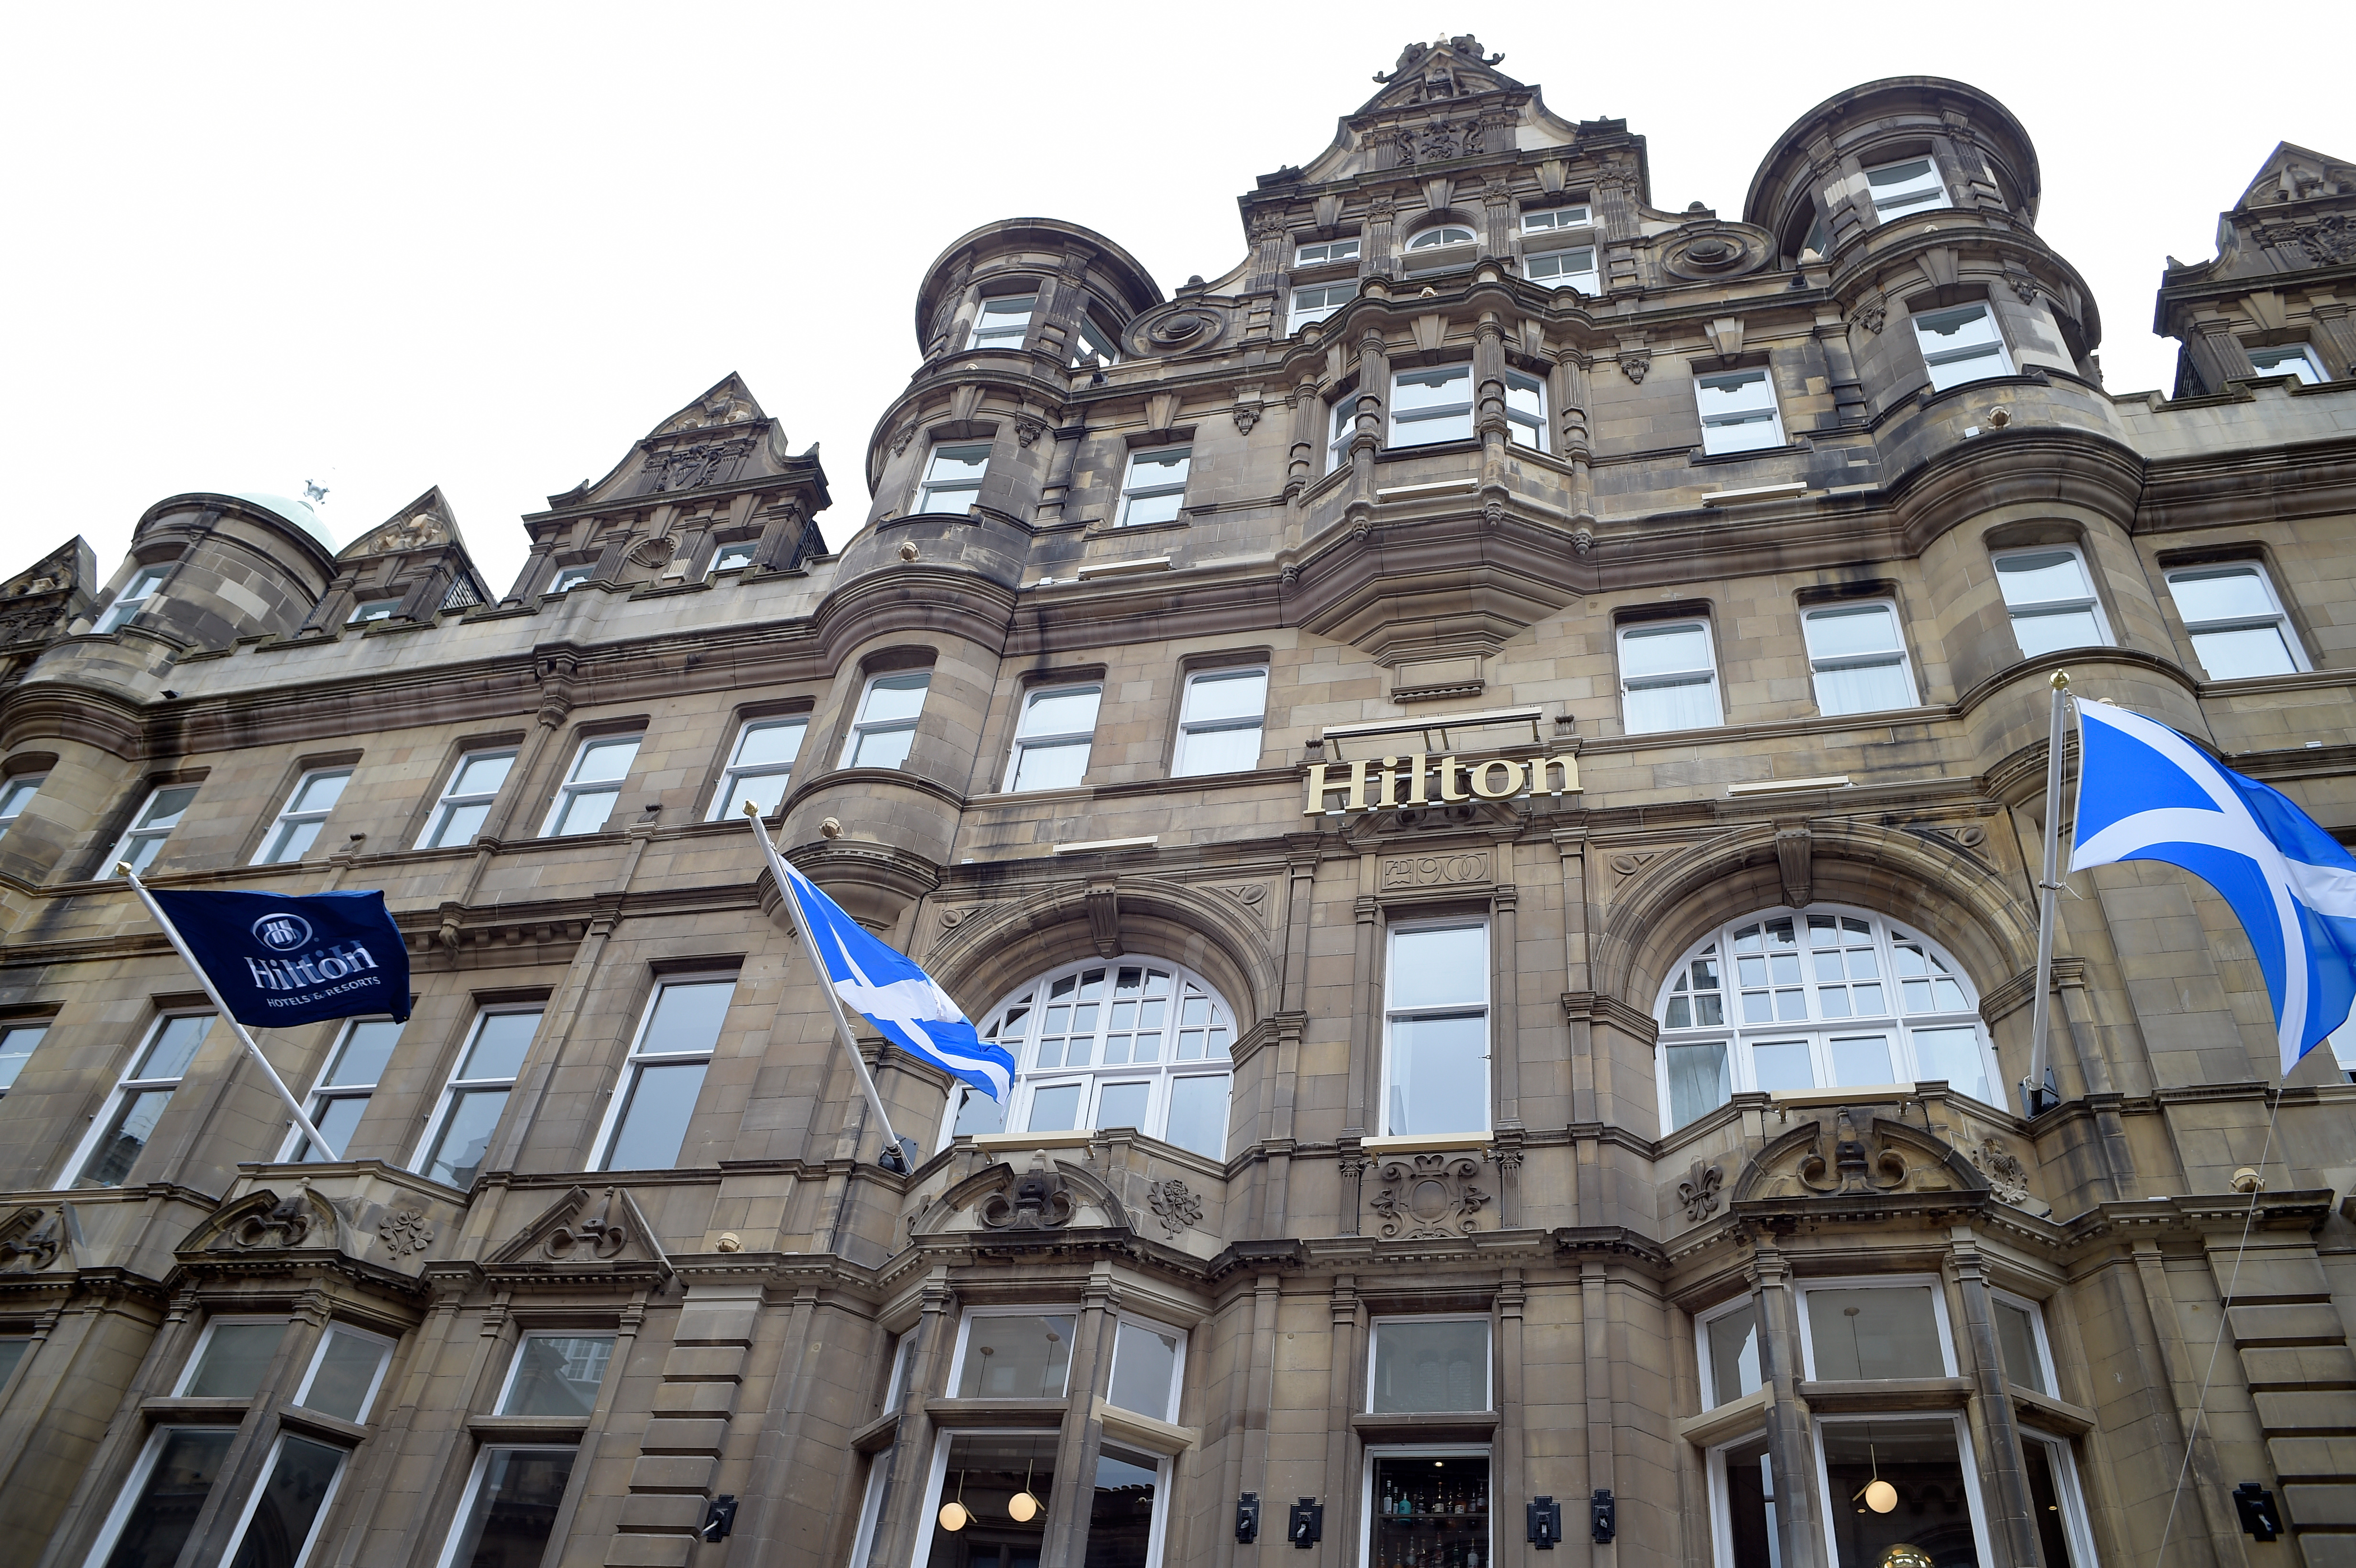 Hilton Hotels Resorts Arrives In Heart Of Scottish Capital Business Wire